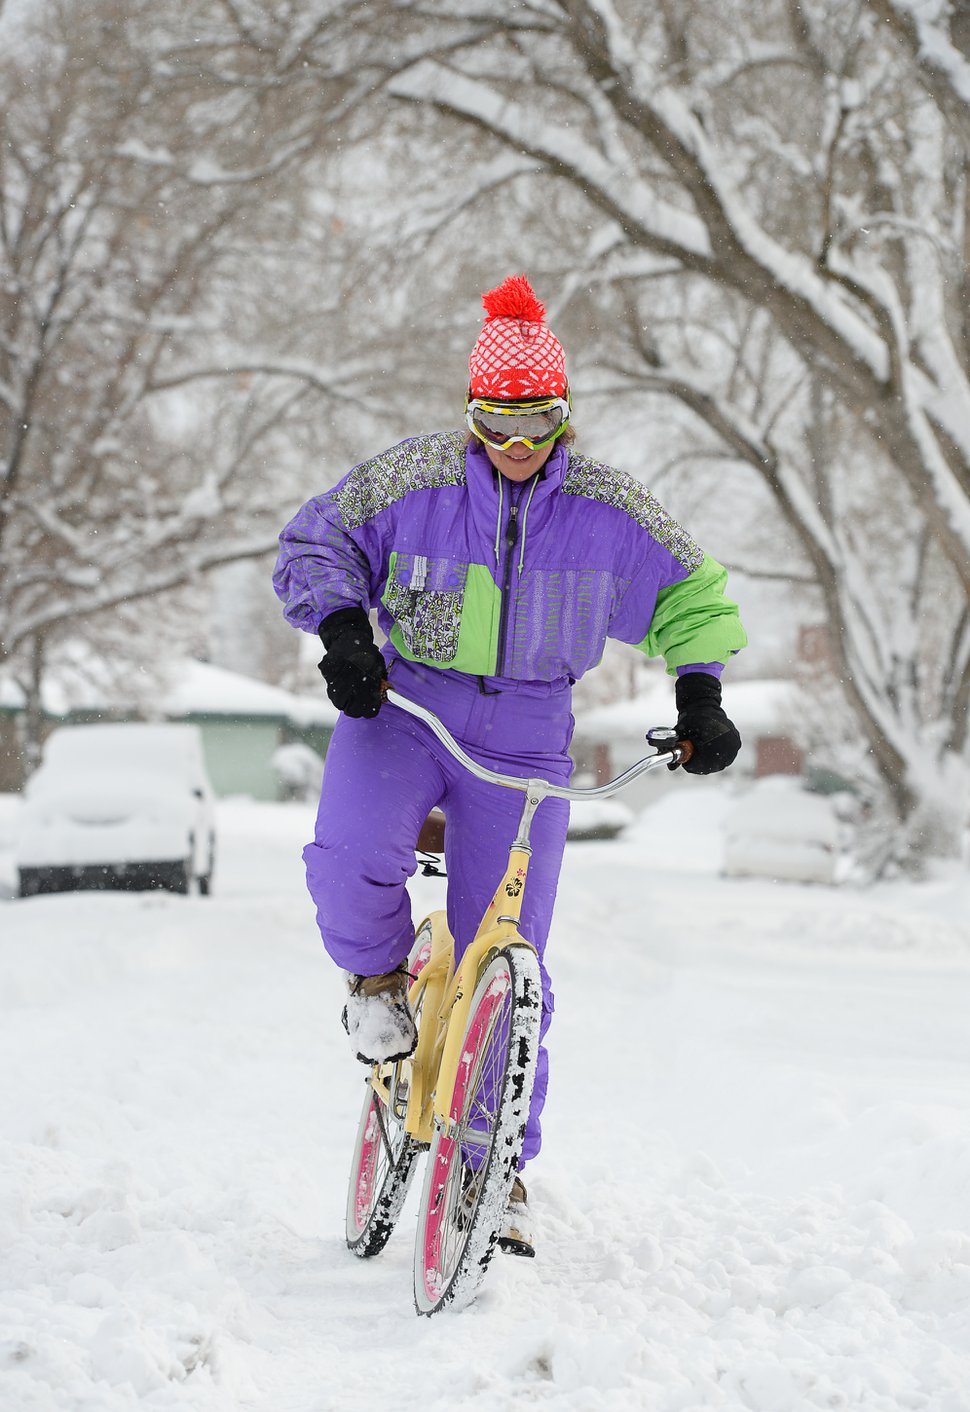 (Francisco Kjolseth | The Salt Lake Tribune) Jayde Prudden, a 4th grade teacher at McGillis School has a little fun as she takes advantage of school being closed to don her one piece purple retro ski suit and take her cruiser for a spin along the snow covered streets in her neighborhood as Salt Lake residents dig out following a heavy snow storm on Wed. Feb. 6, 2019.